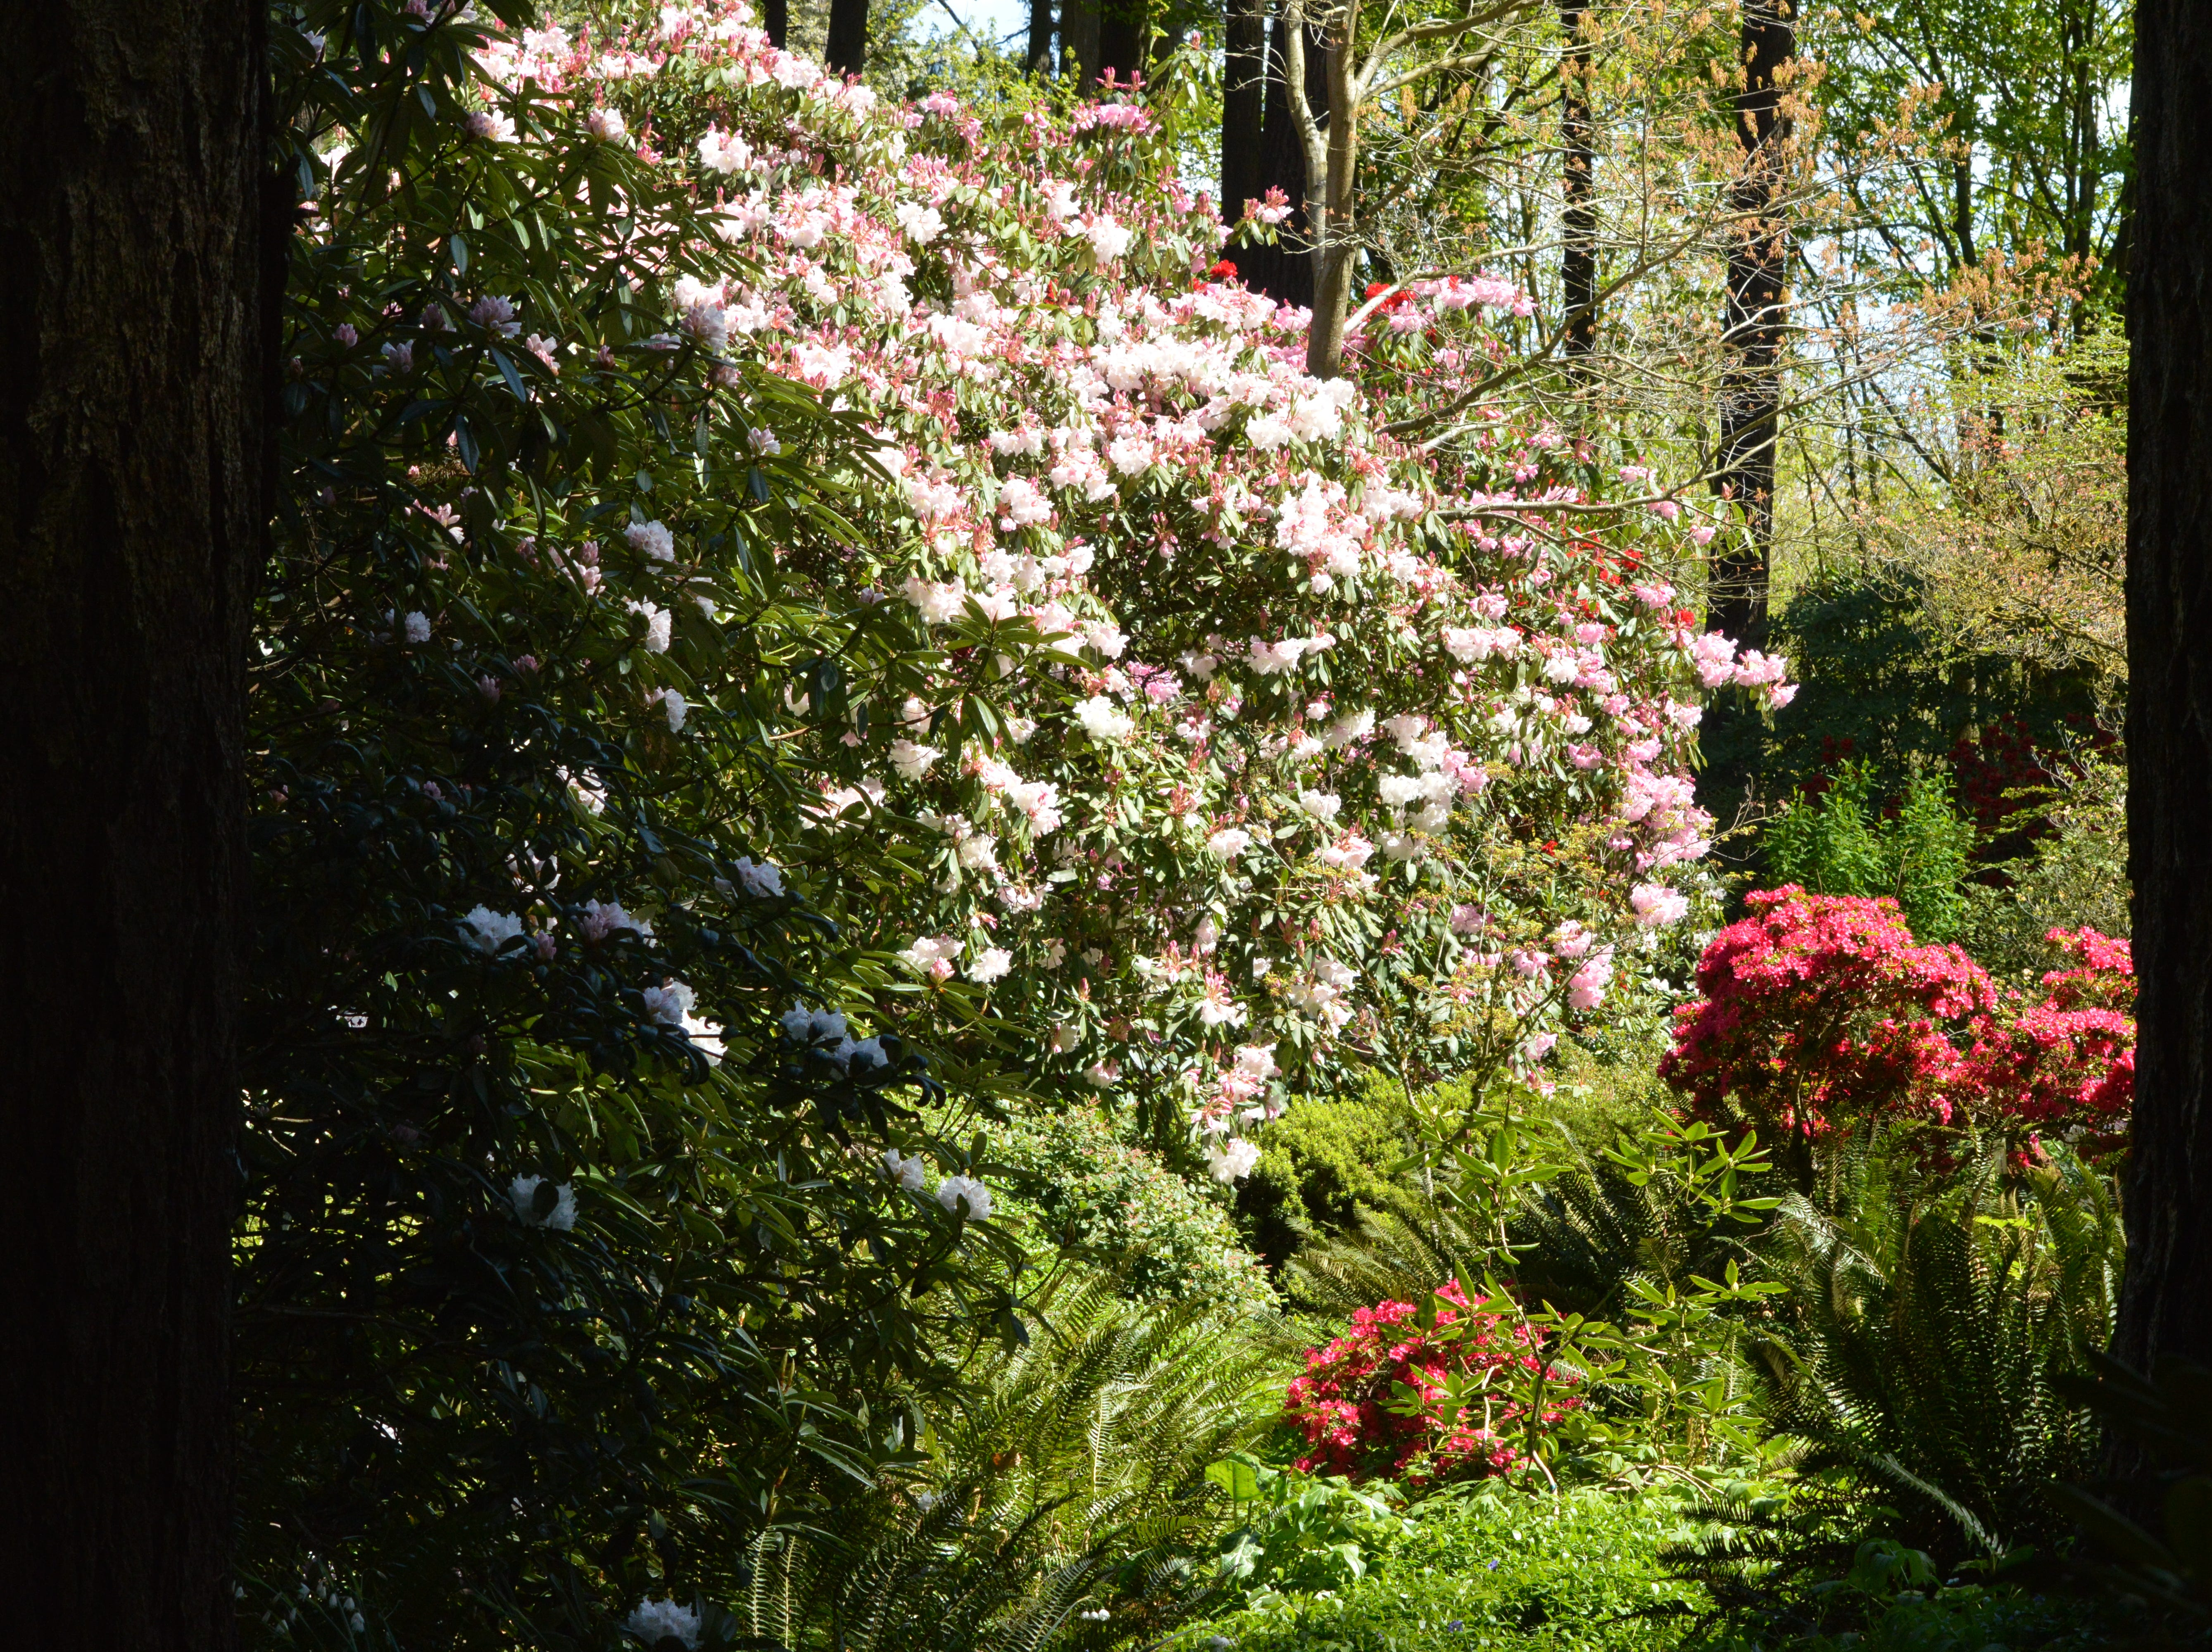 Open gardens: The Cecil and Molly Smith Rhododendron Garden, which features 600 of species and hybrid rhododendrons and other plants, will be open Saturdays and Sundays, 11 a.m. to 4 p.m. April 6 through May 19, 5055 Raybell Road NE, St. Paul. $3 admission, free for American Rhododendron Society Members. 503-625-6331.